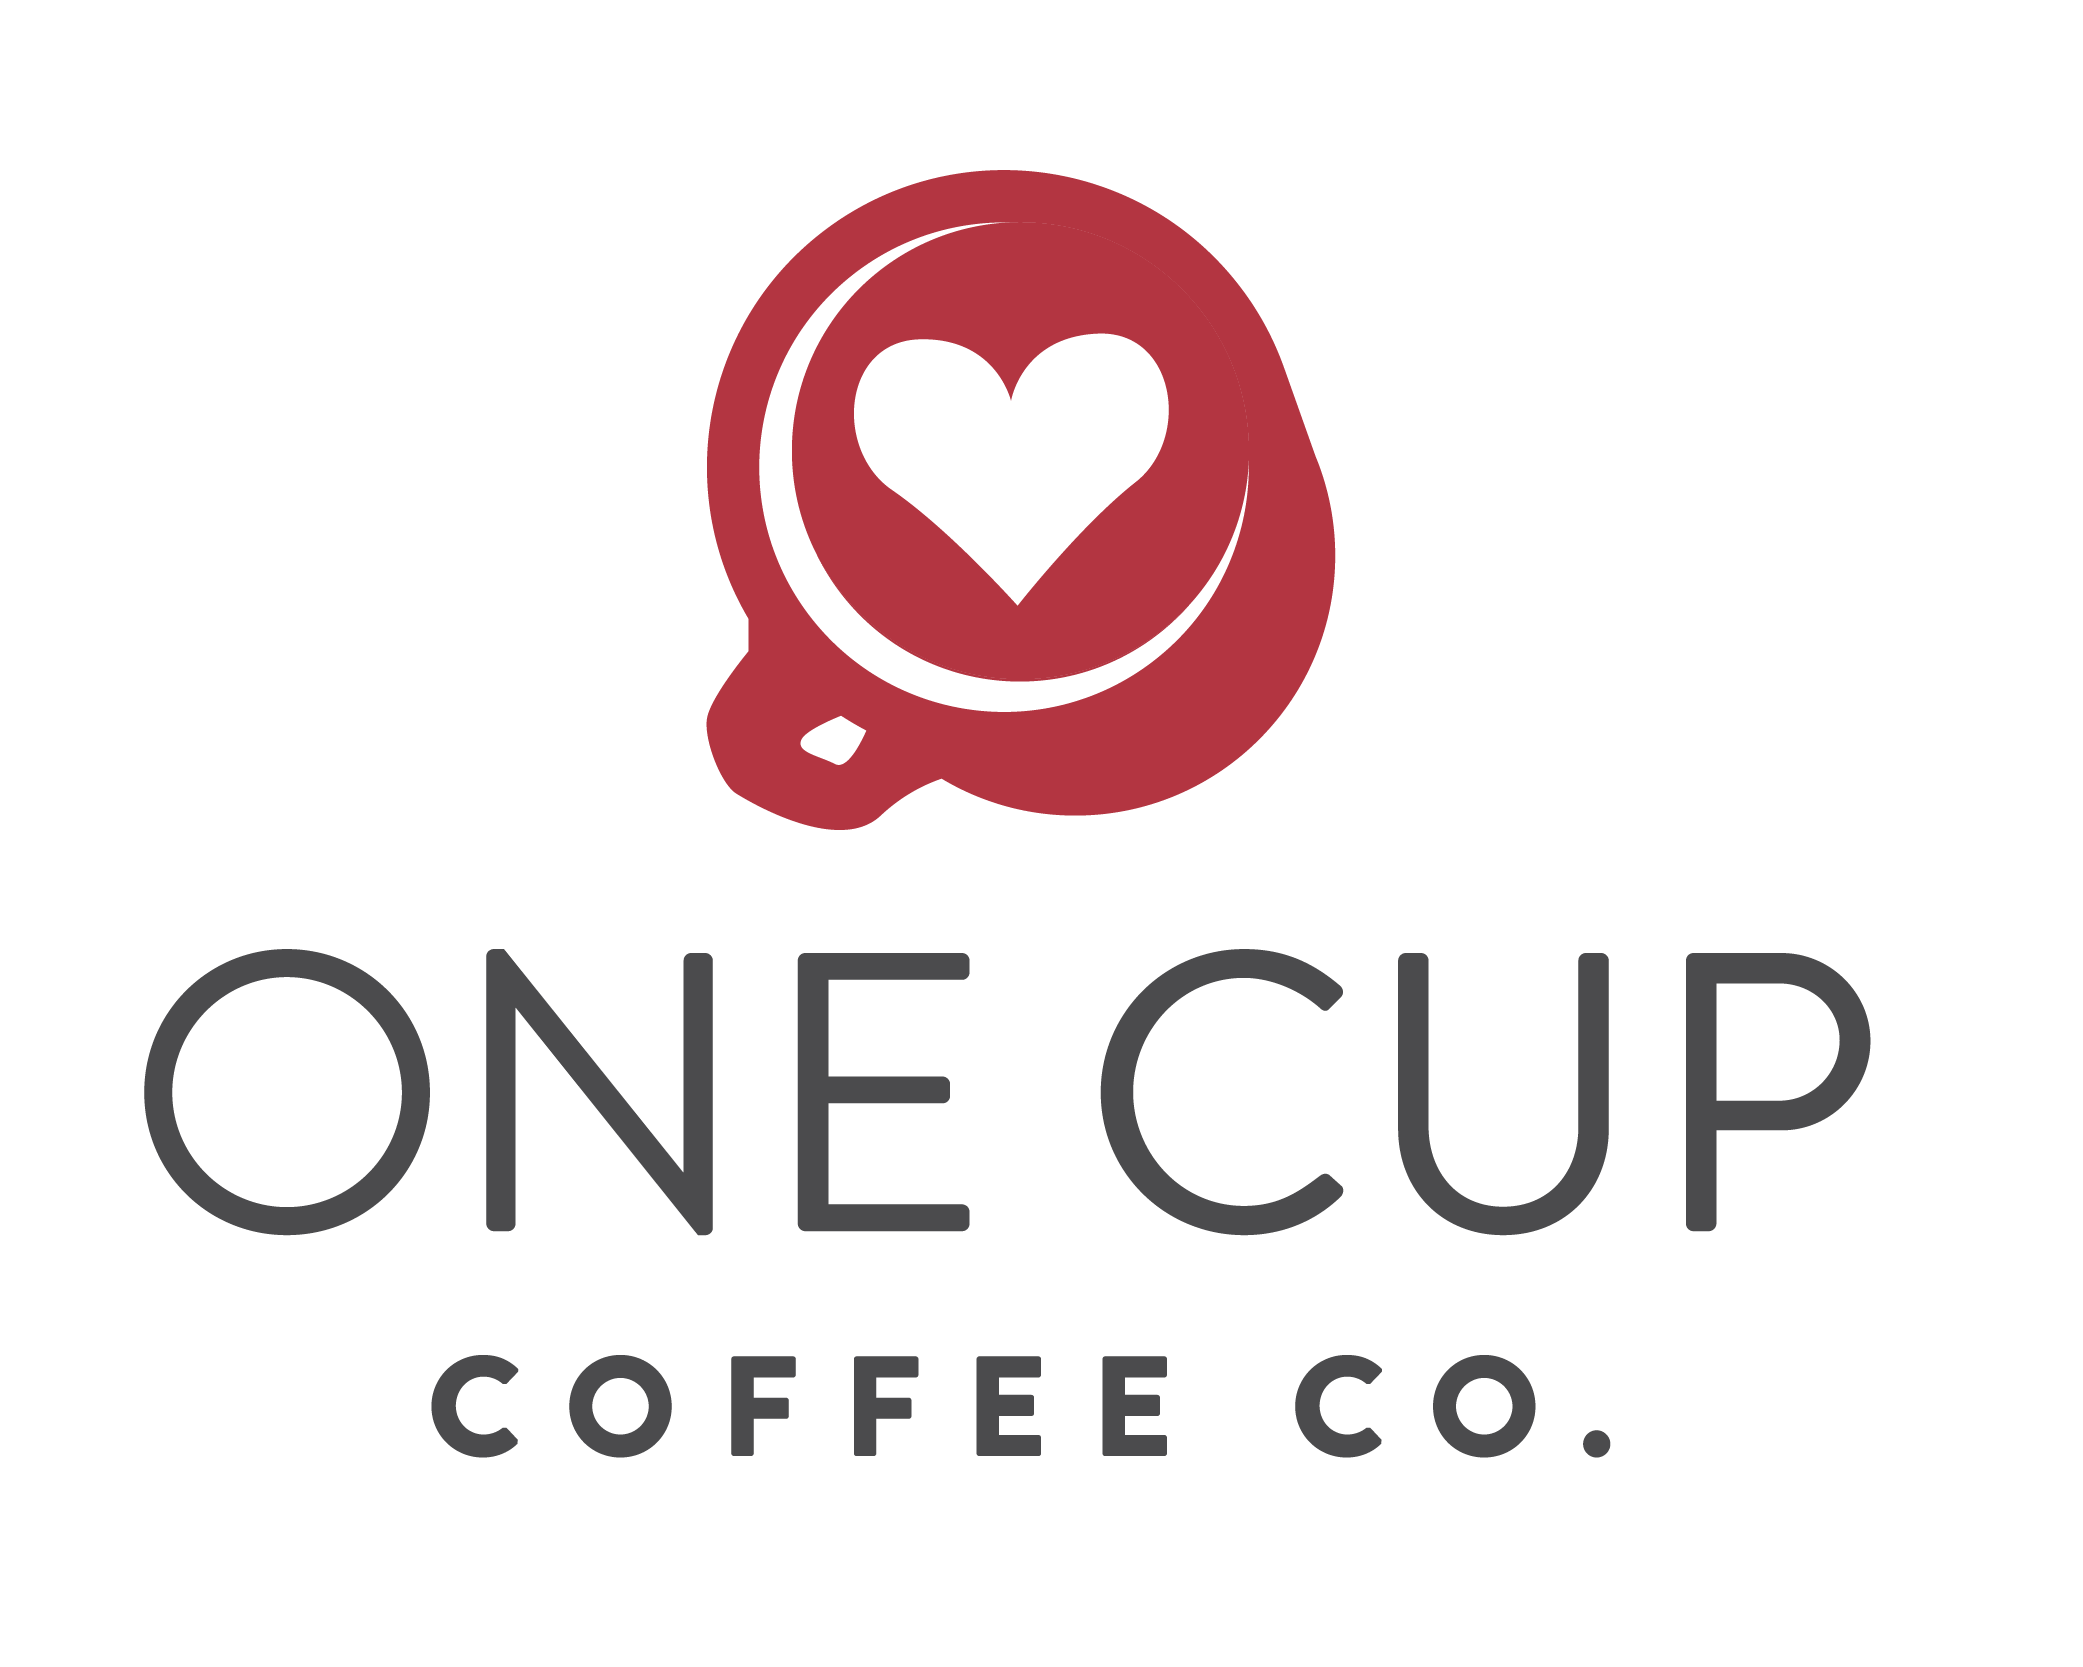 One Cup Coffee Co logo